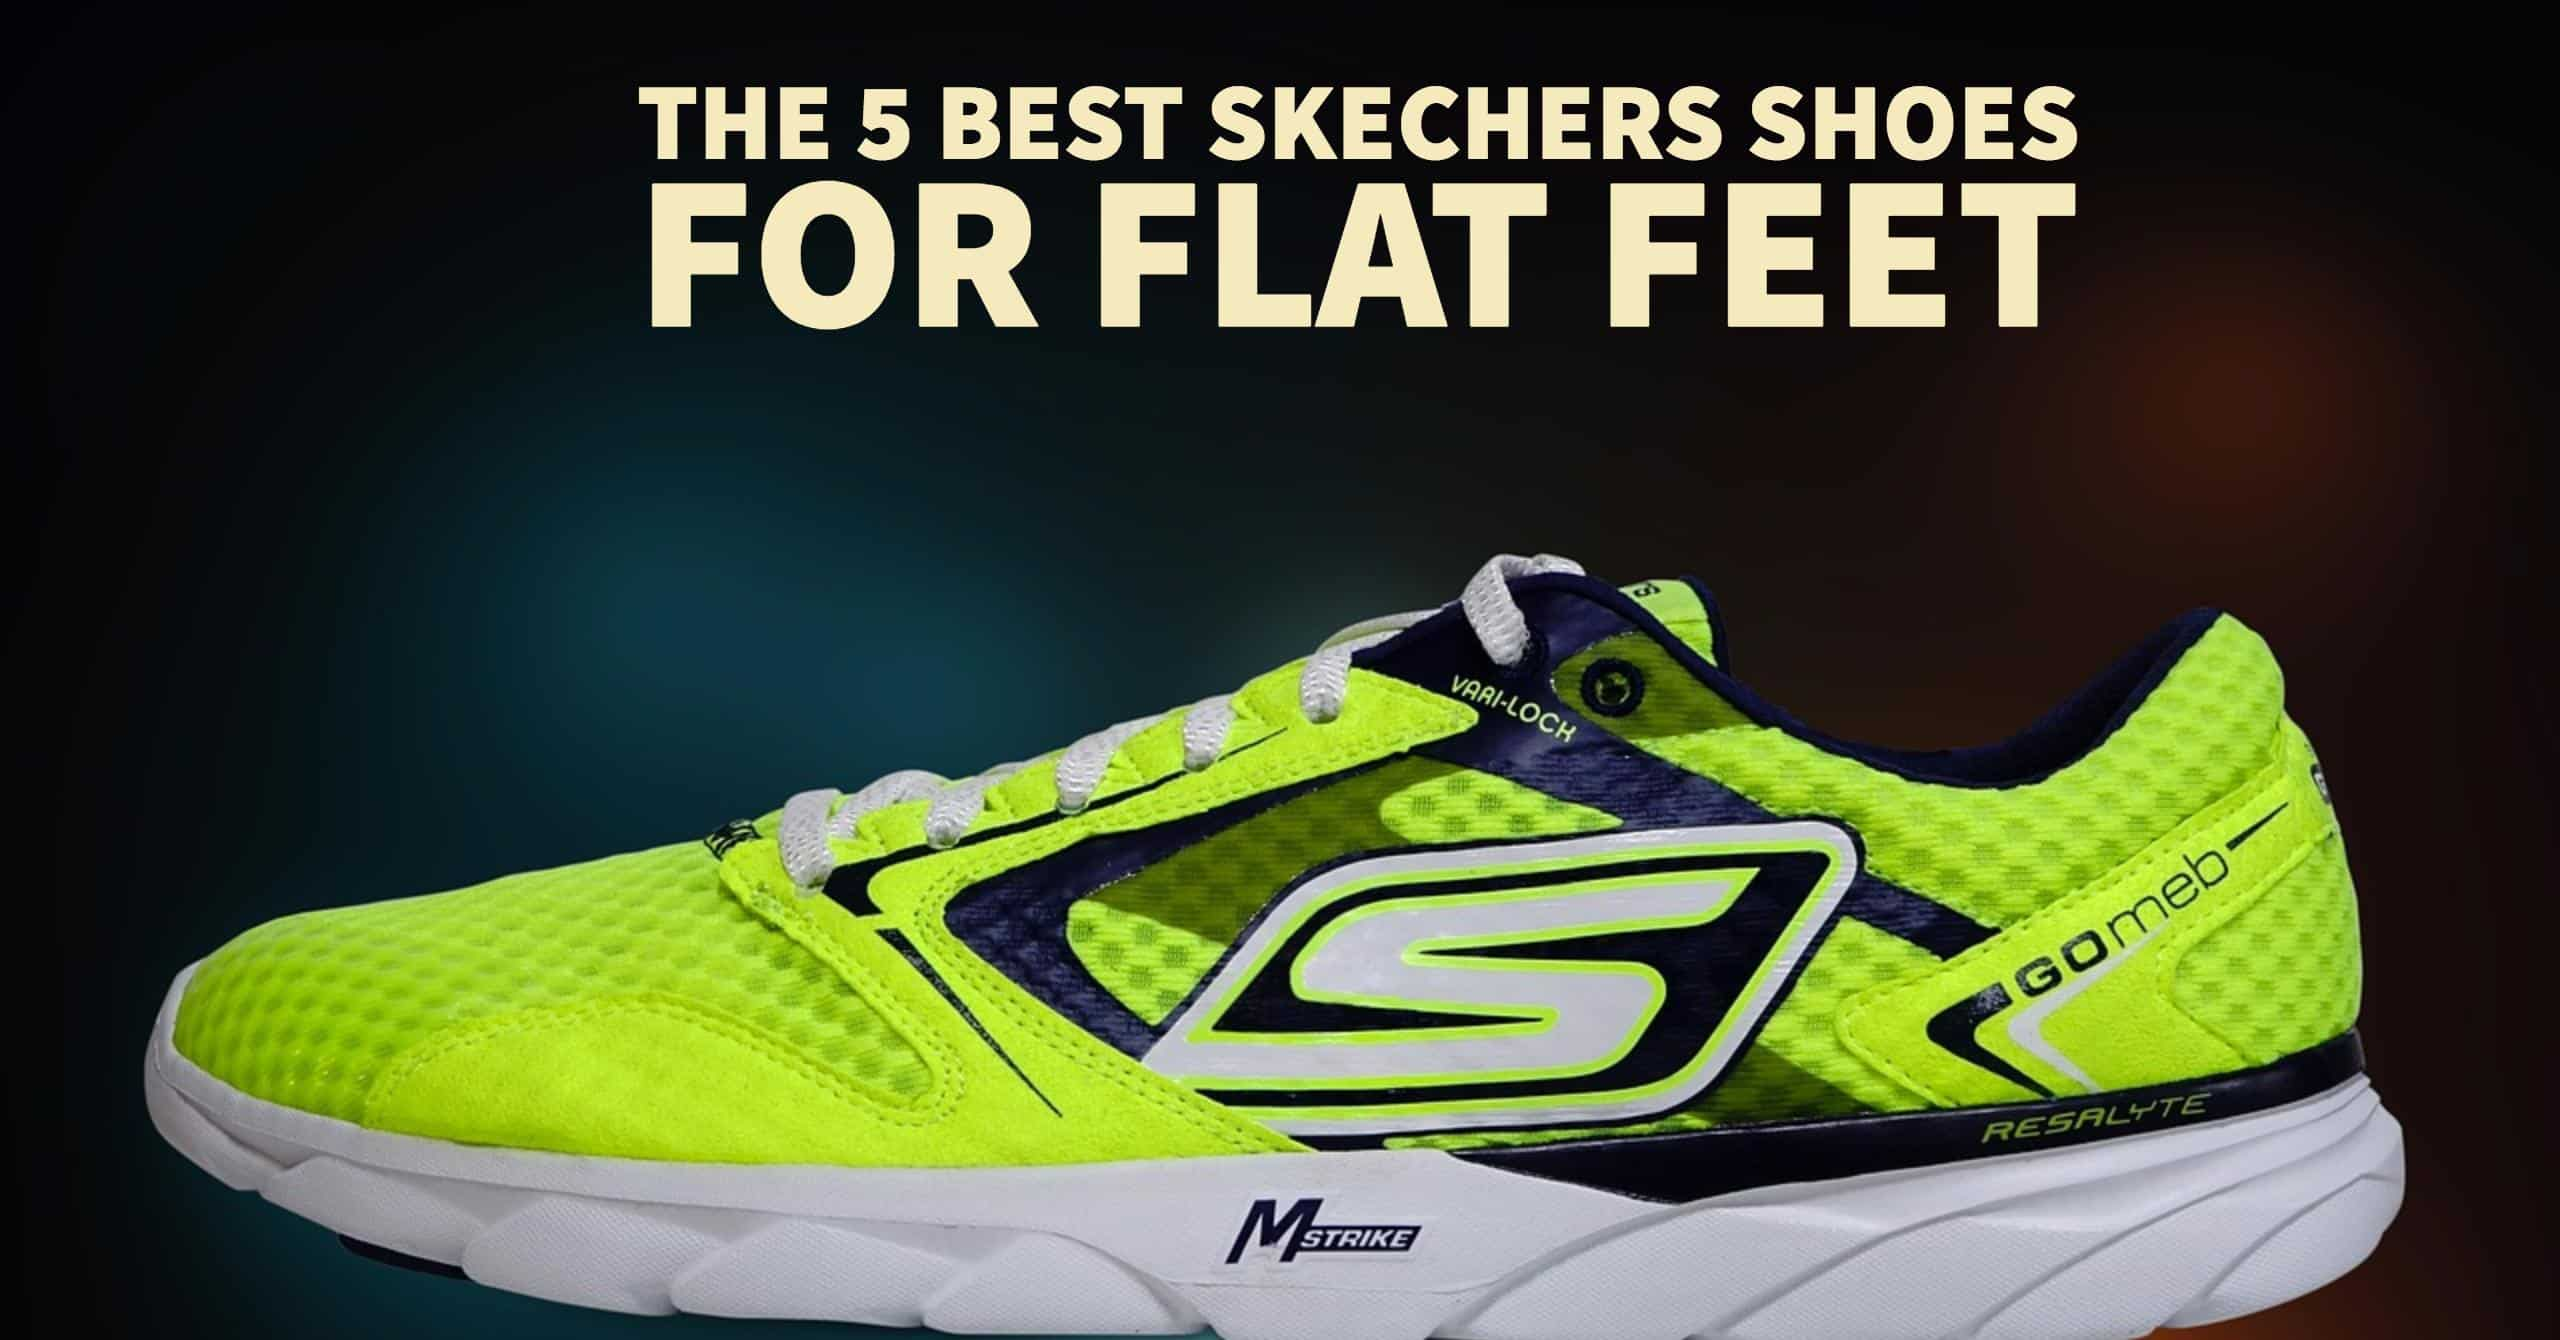 b4bc271673a Skechers have quickly ascended to the conversation of good running shoes.  Here are the 5